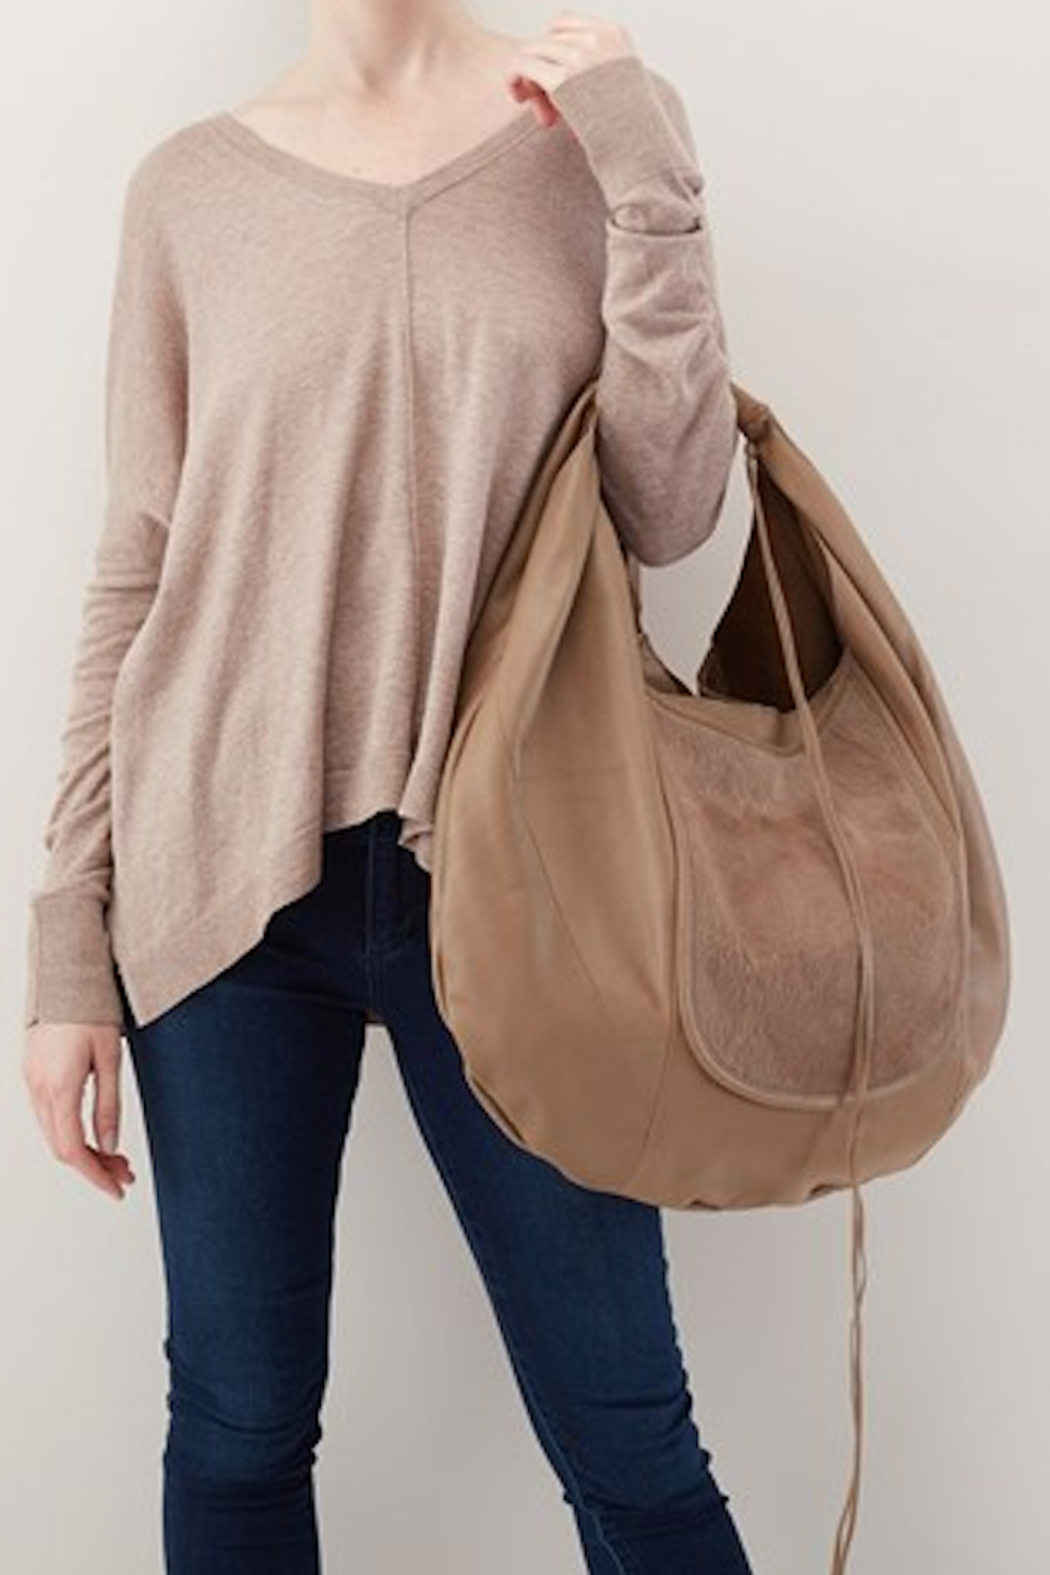 e2a8f4998b5a Hobo Eclipse Bag from Park City by Mary Jane s — Shoptiques